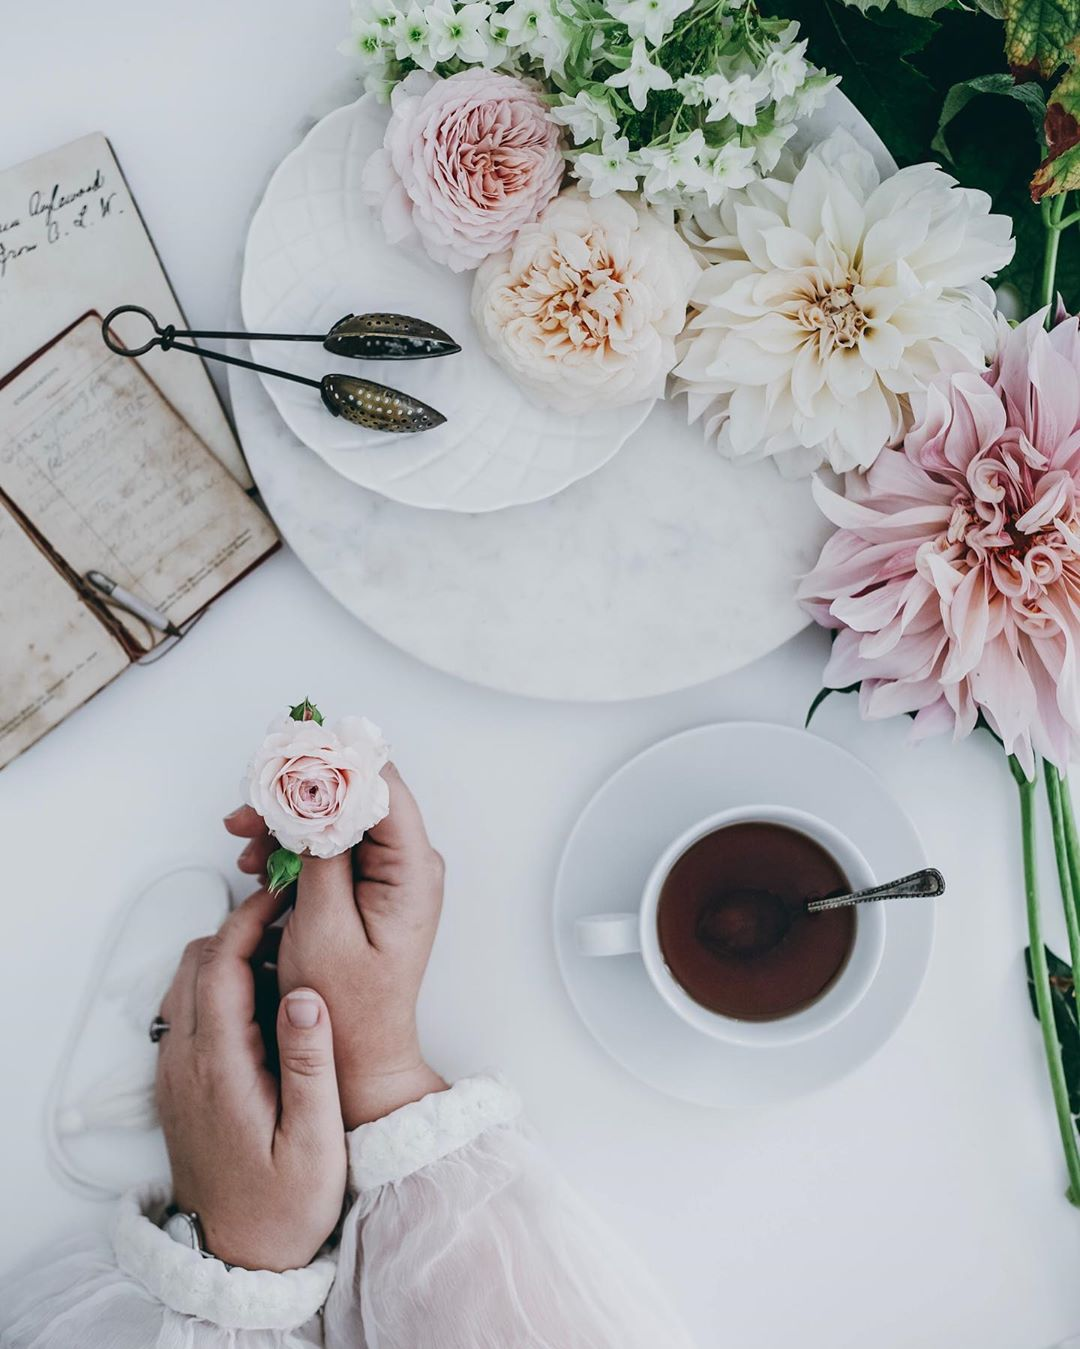 A simple grasp of a flower with morning tea. Source:  @katherinedorrington